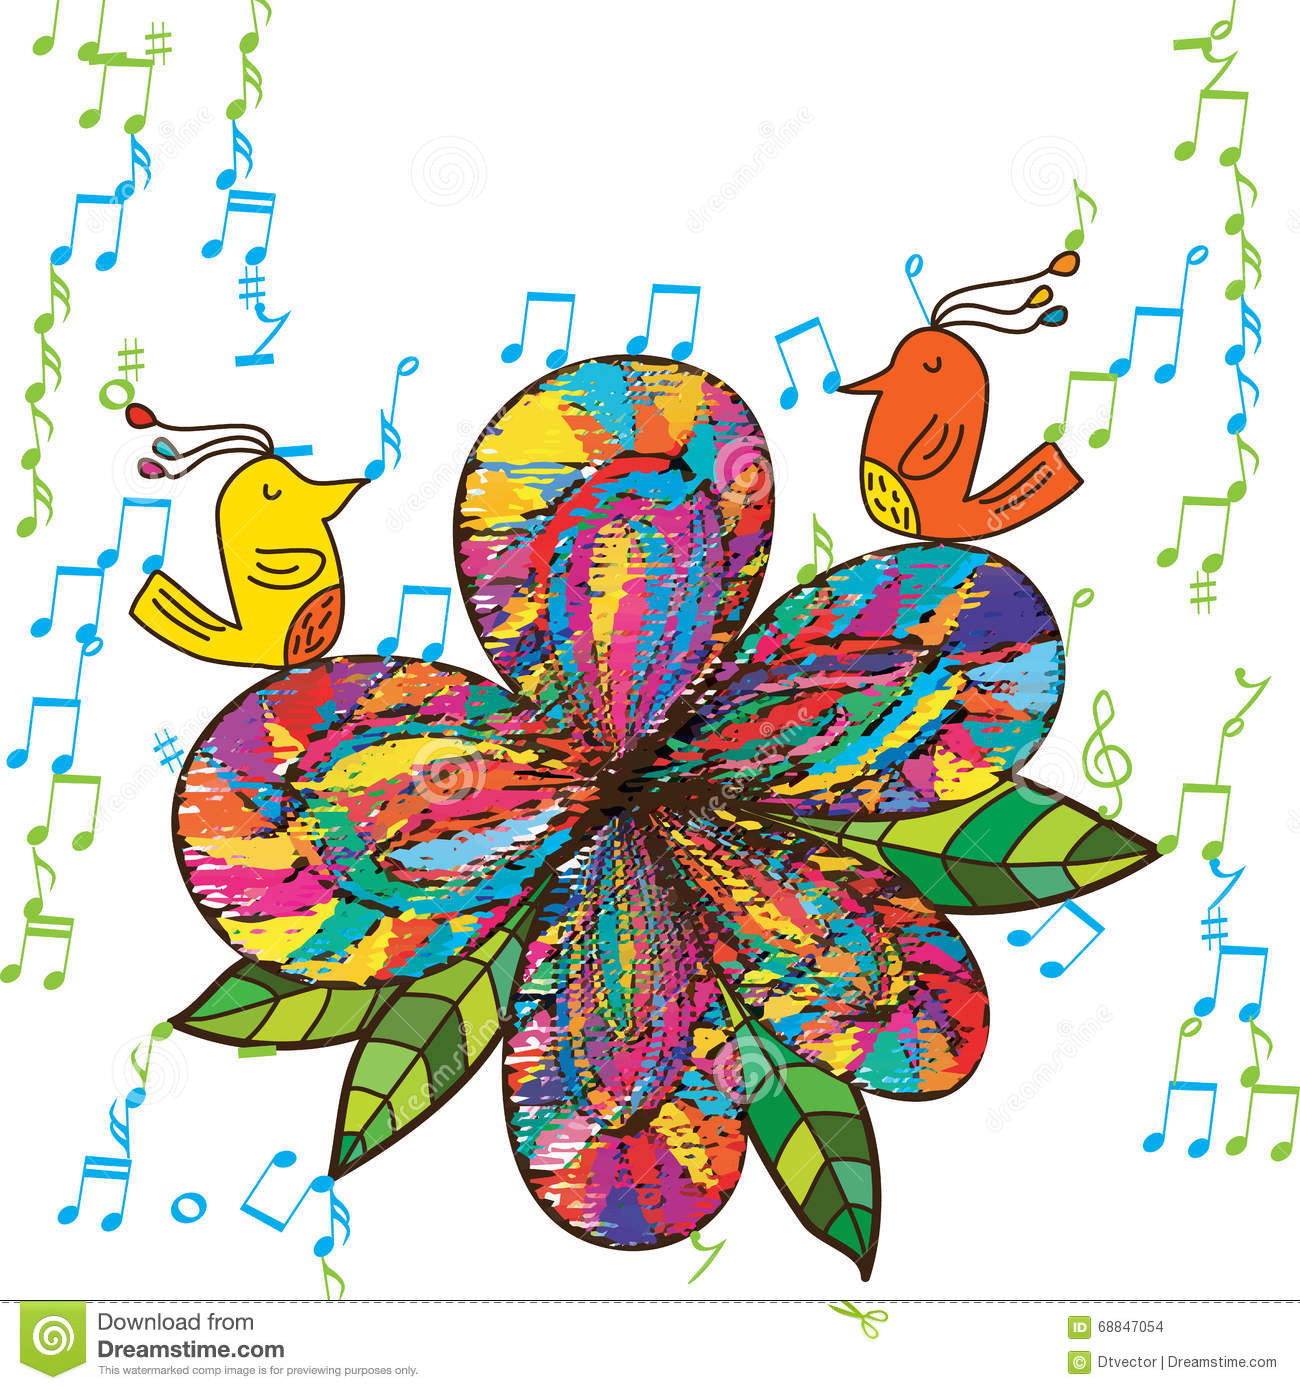 Color zen music - Royalty Free Vector Download Zen Bird Flower Fabric Music